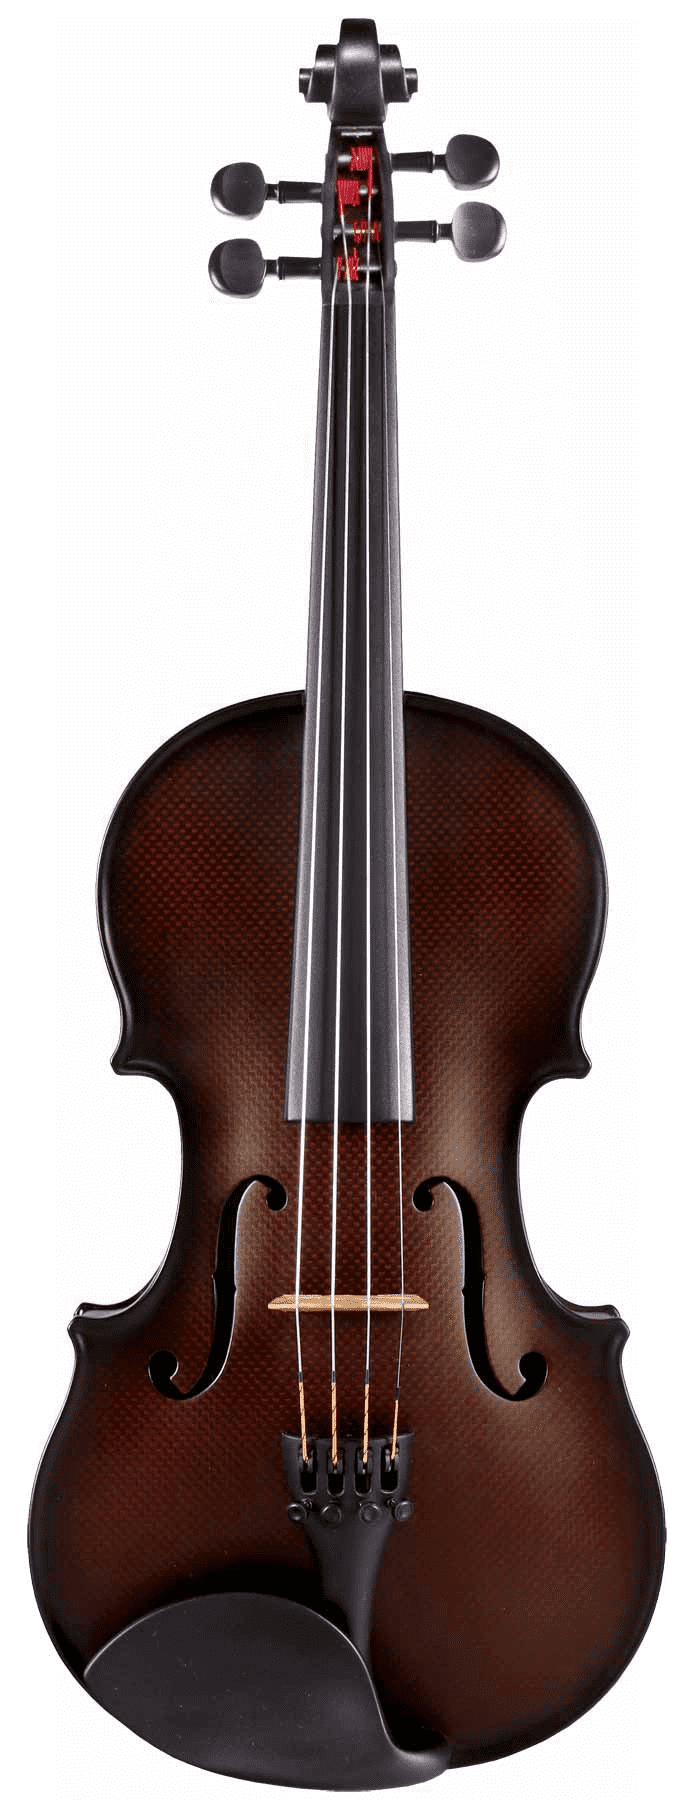 Glasser Carbon Composite 4 String Violin